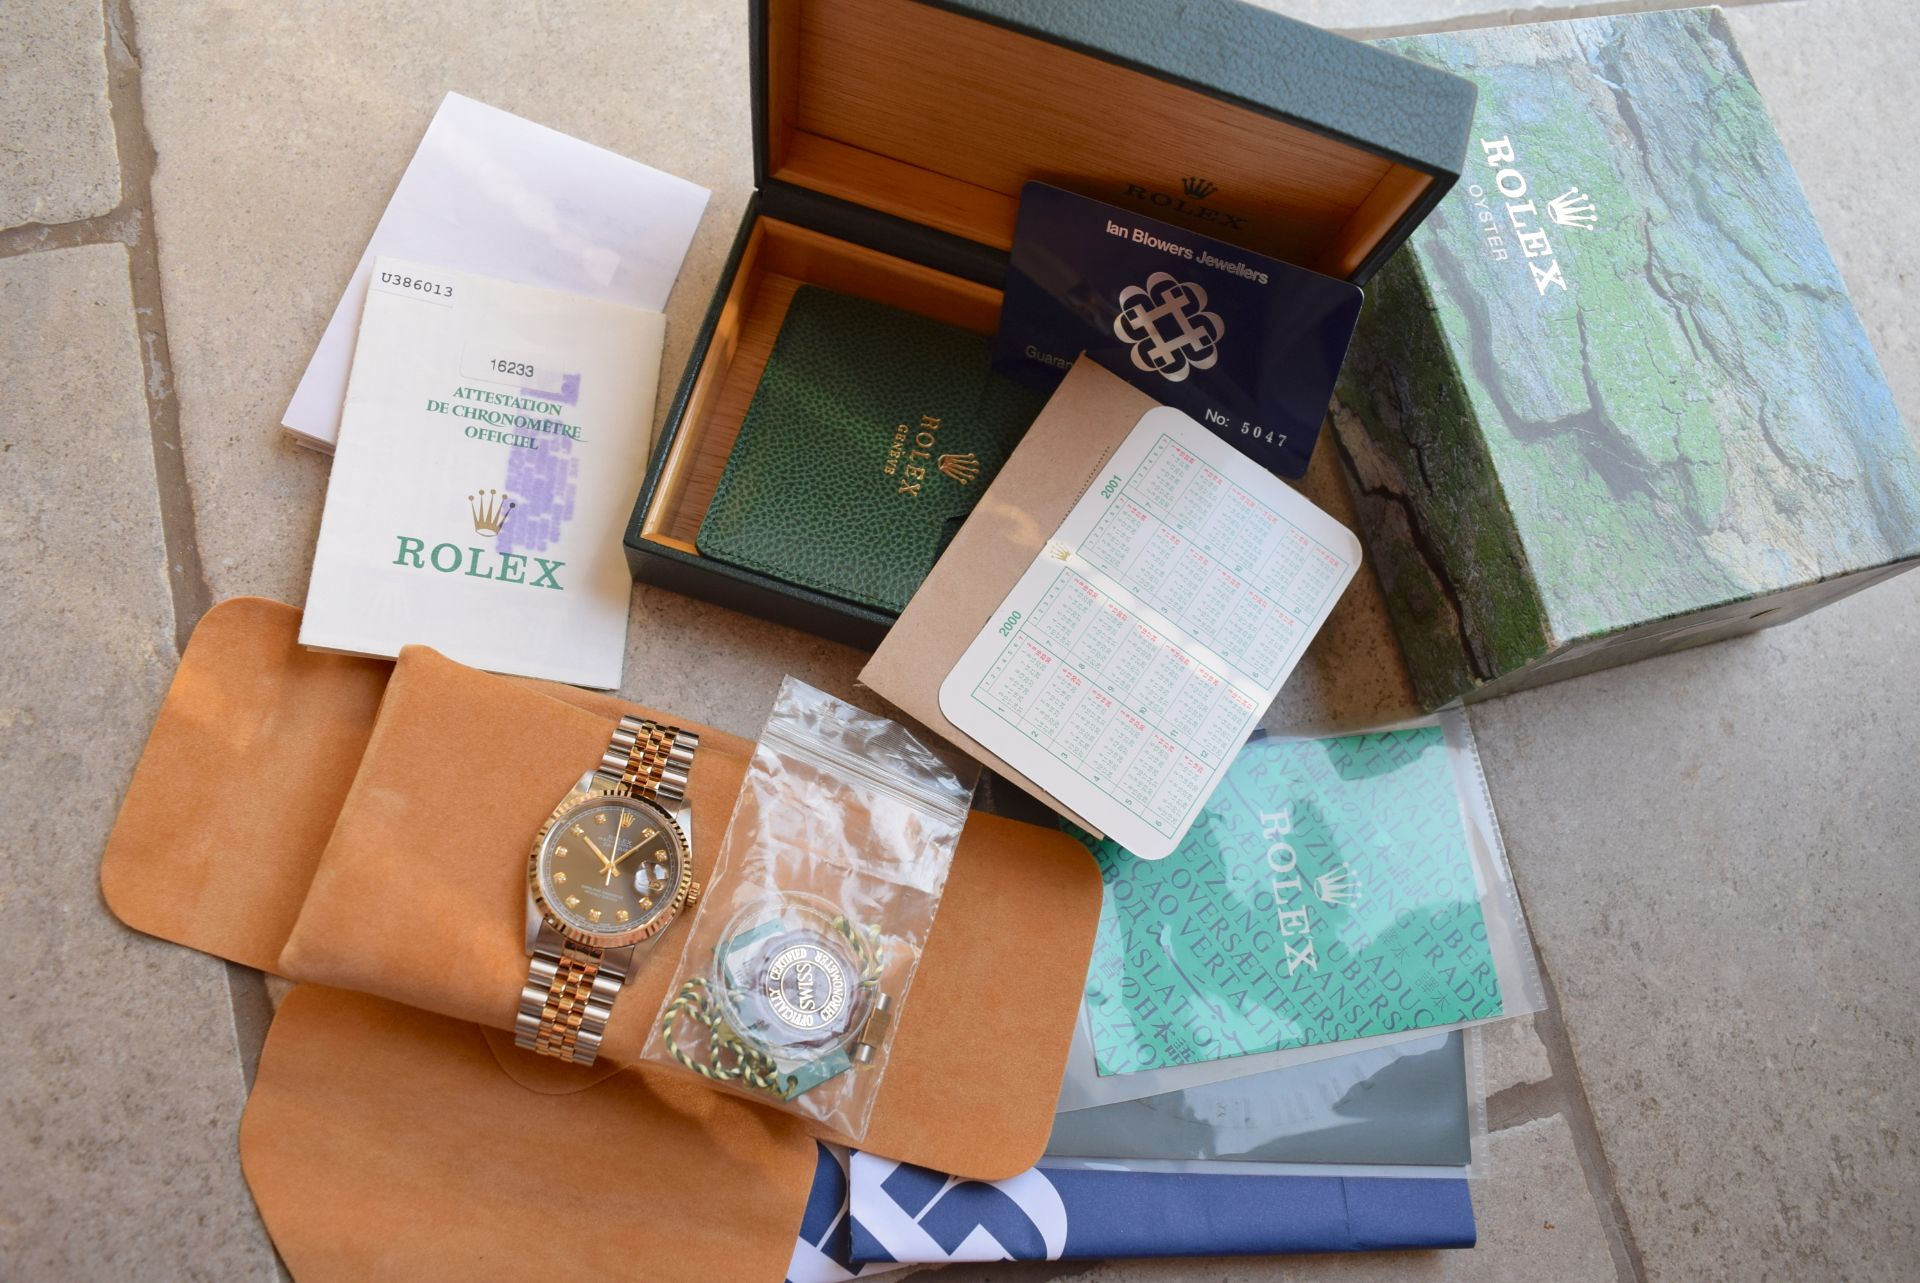 18CT GOLD/ STEEL ROLEX DATEJUST - 36MM, MENS (COMPLETE SET INC BOX, PAPERS, TAGS ETC) - Image 2 of 25